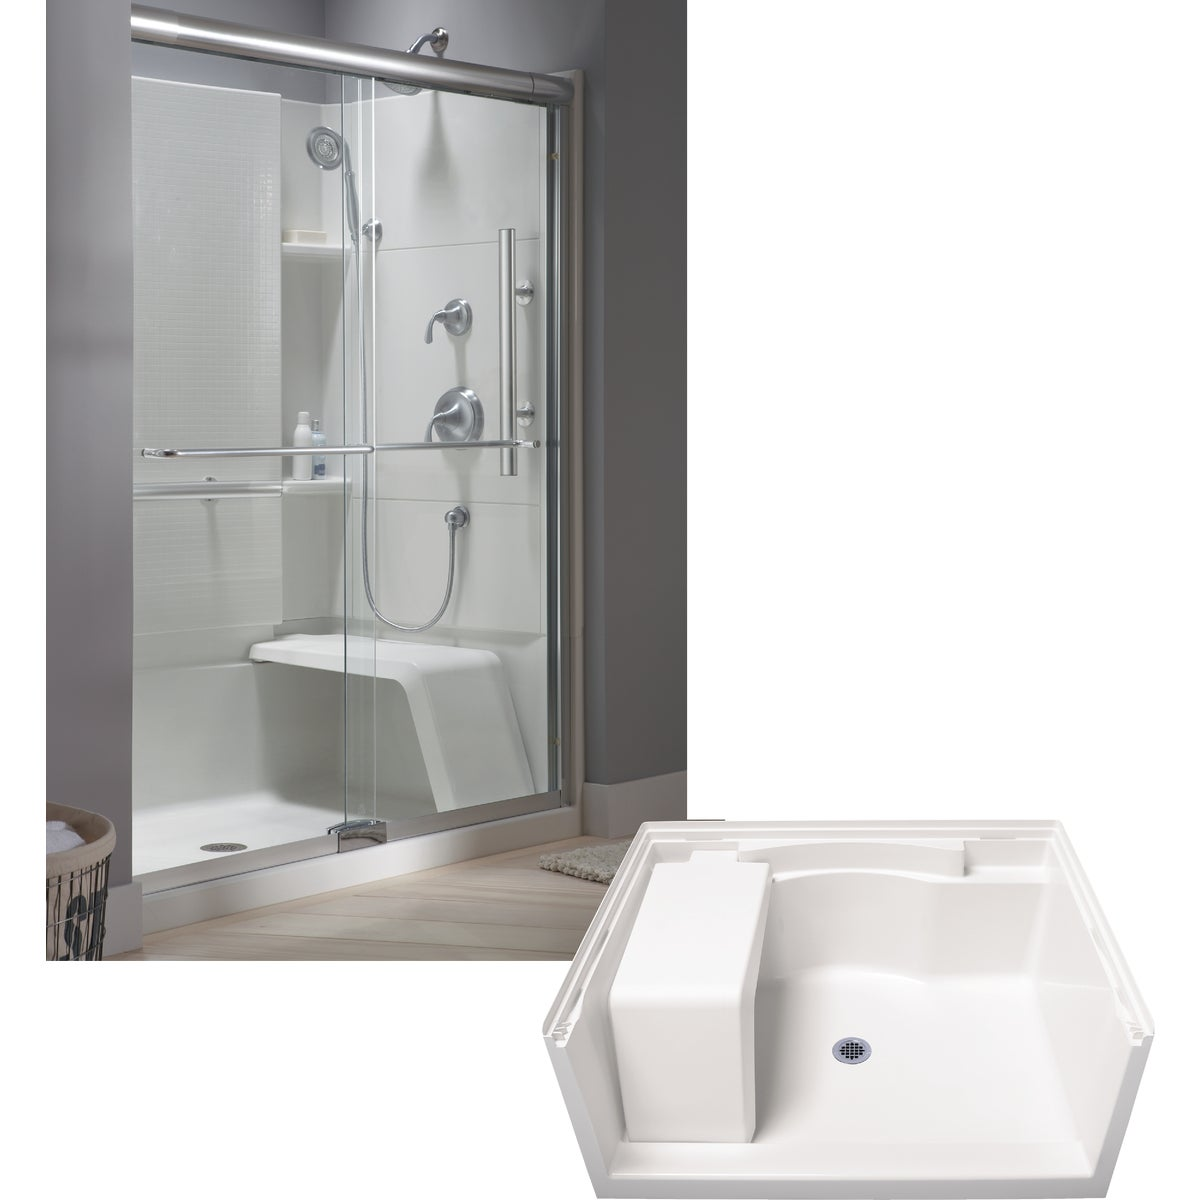 """48"""" SEATED SHOWER BASE - 72281100-0 by Sterling Pbg/vikrell"""